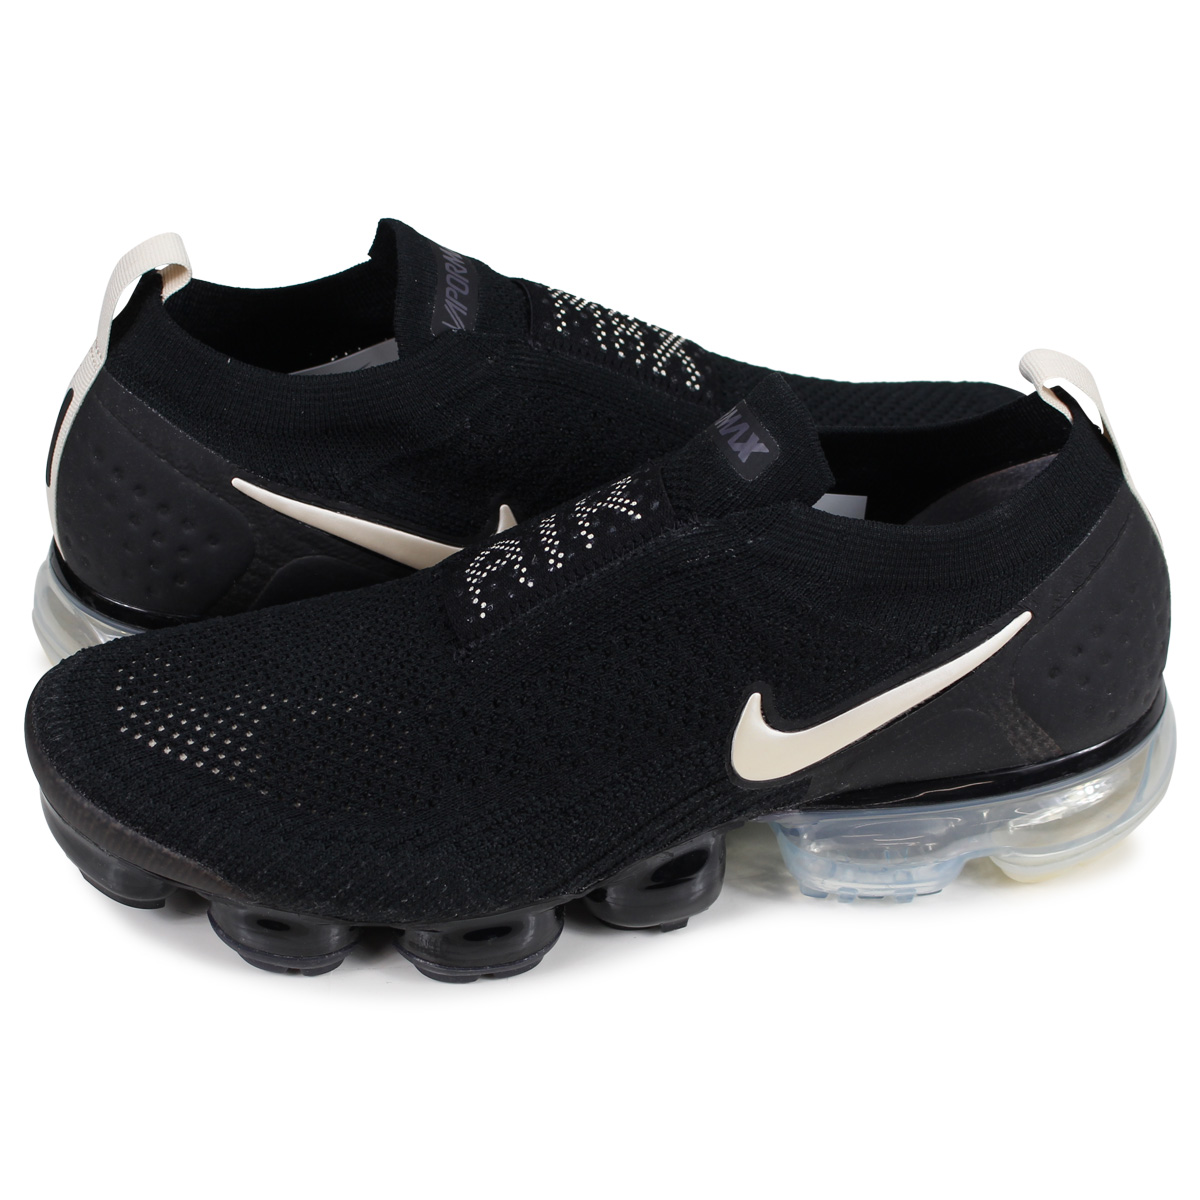 Nike NIKE air vapor max fried food knit 2 sneakers men AIR VAPORMAX FLYKNIT  MOC 2 black black AH7006-002